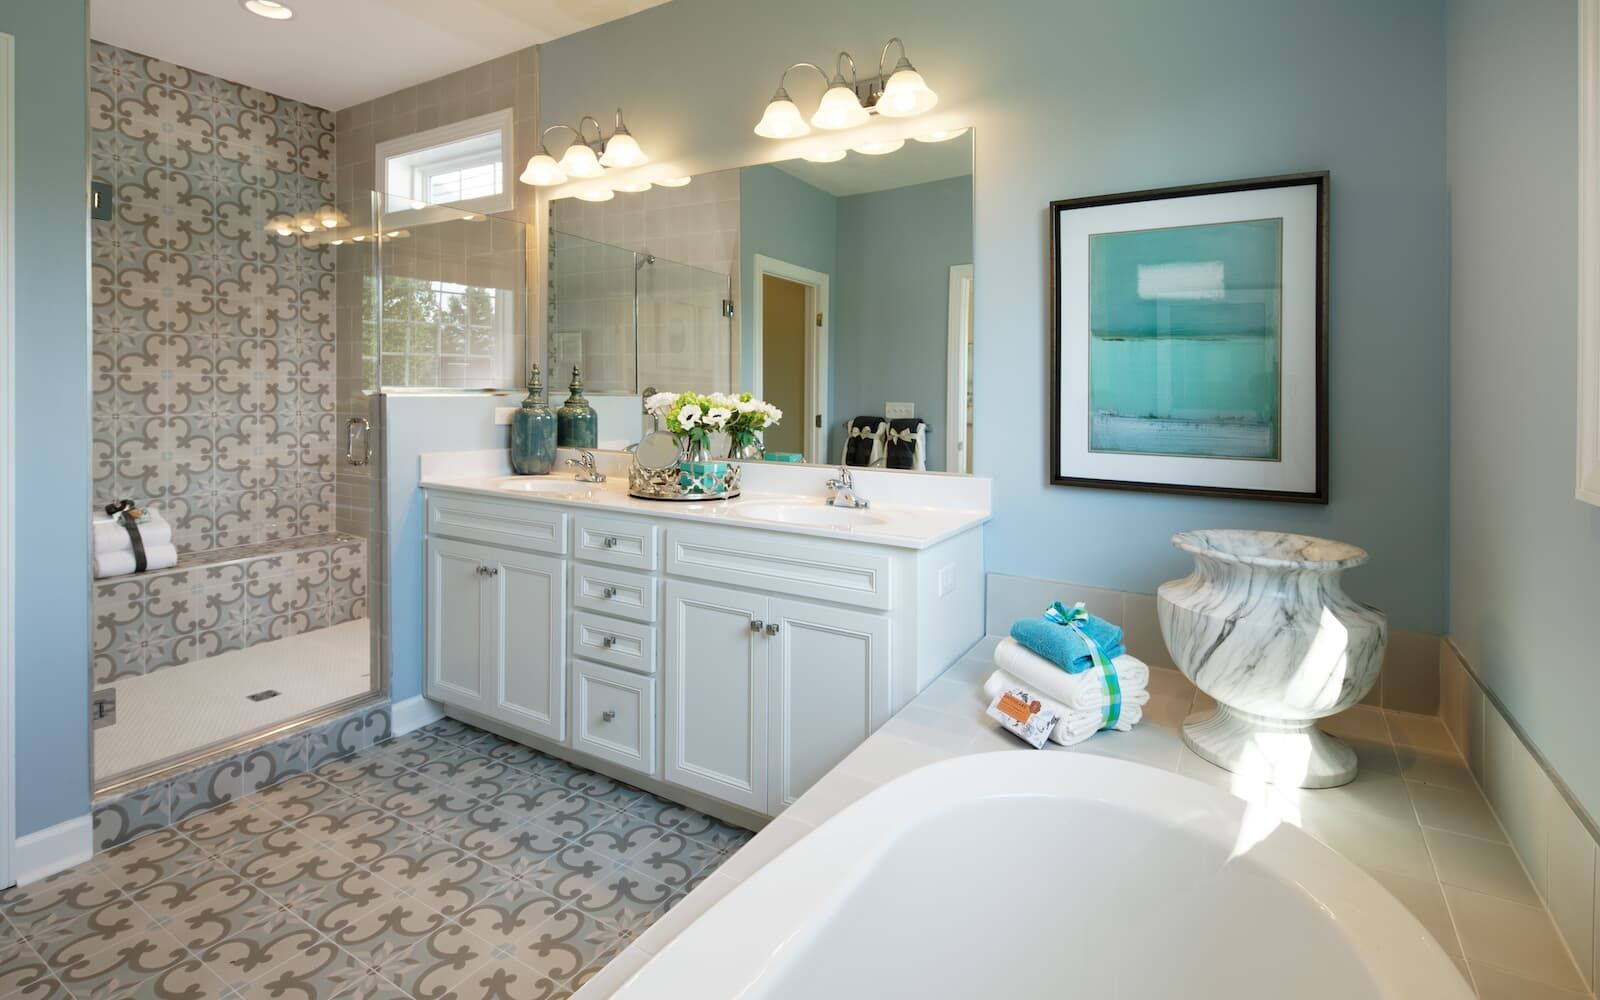 Bathroom featured in the Picasso By Brookfield Residential in Sussex, DE